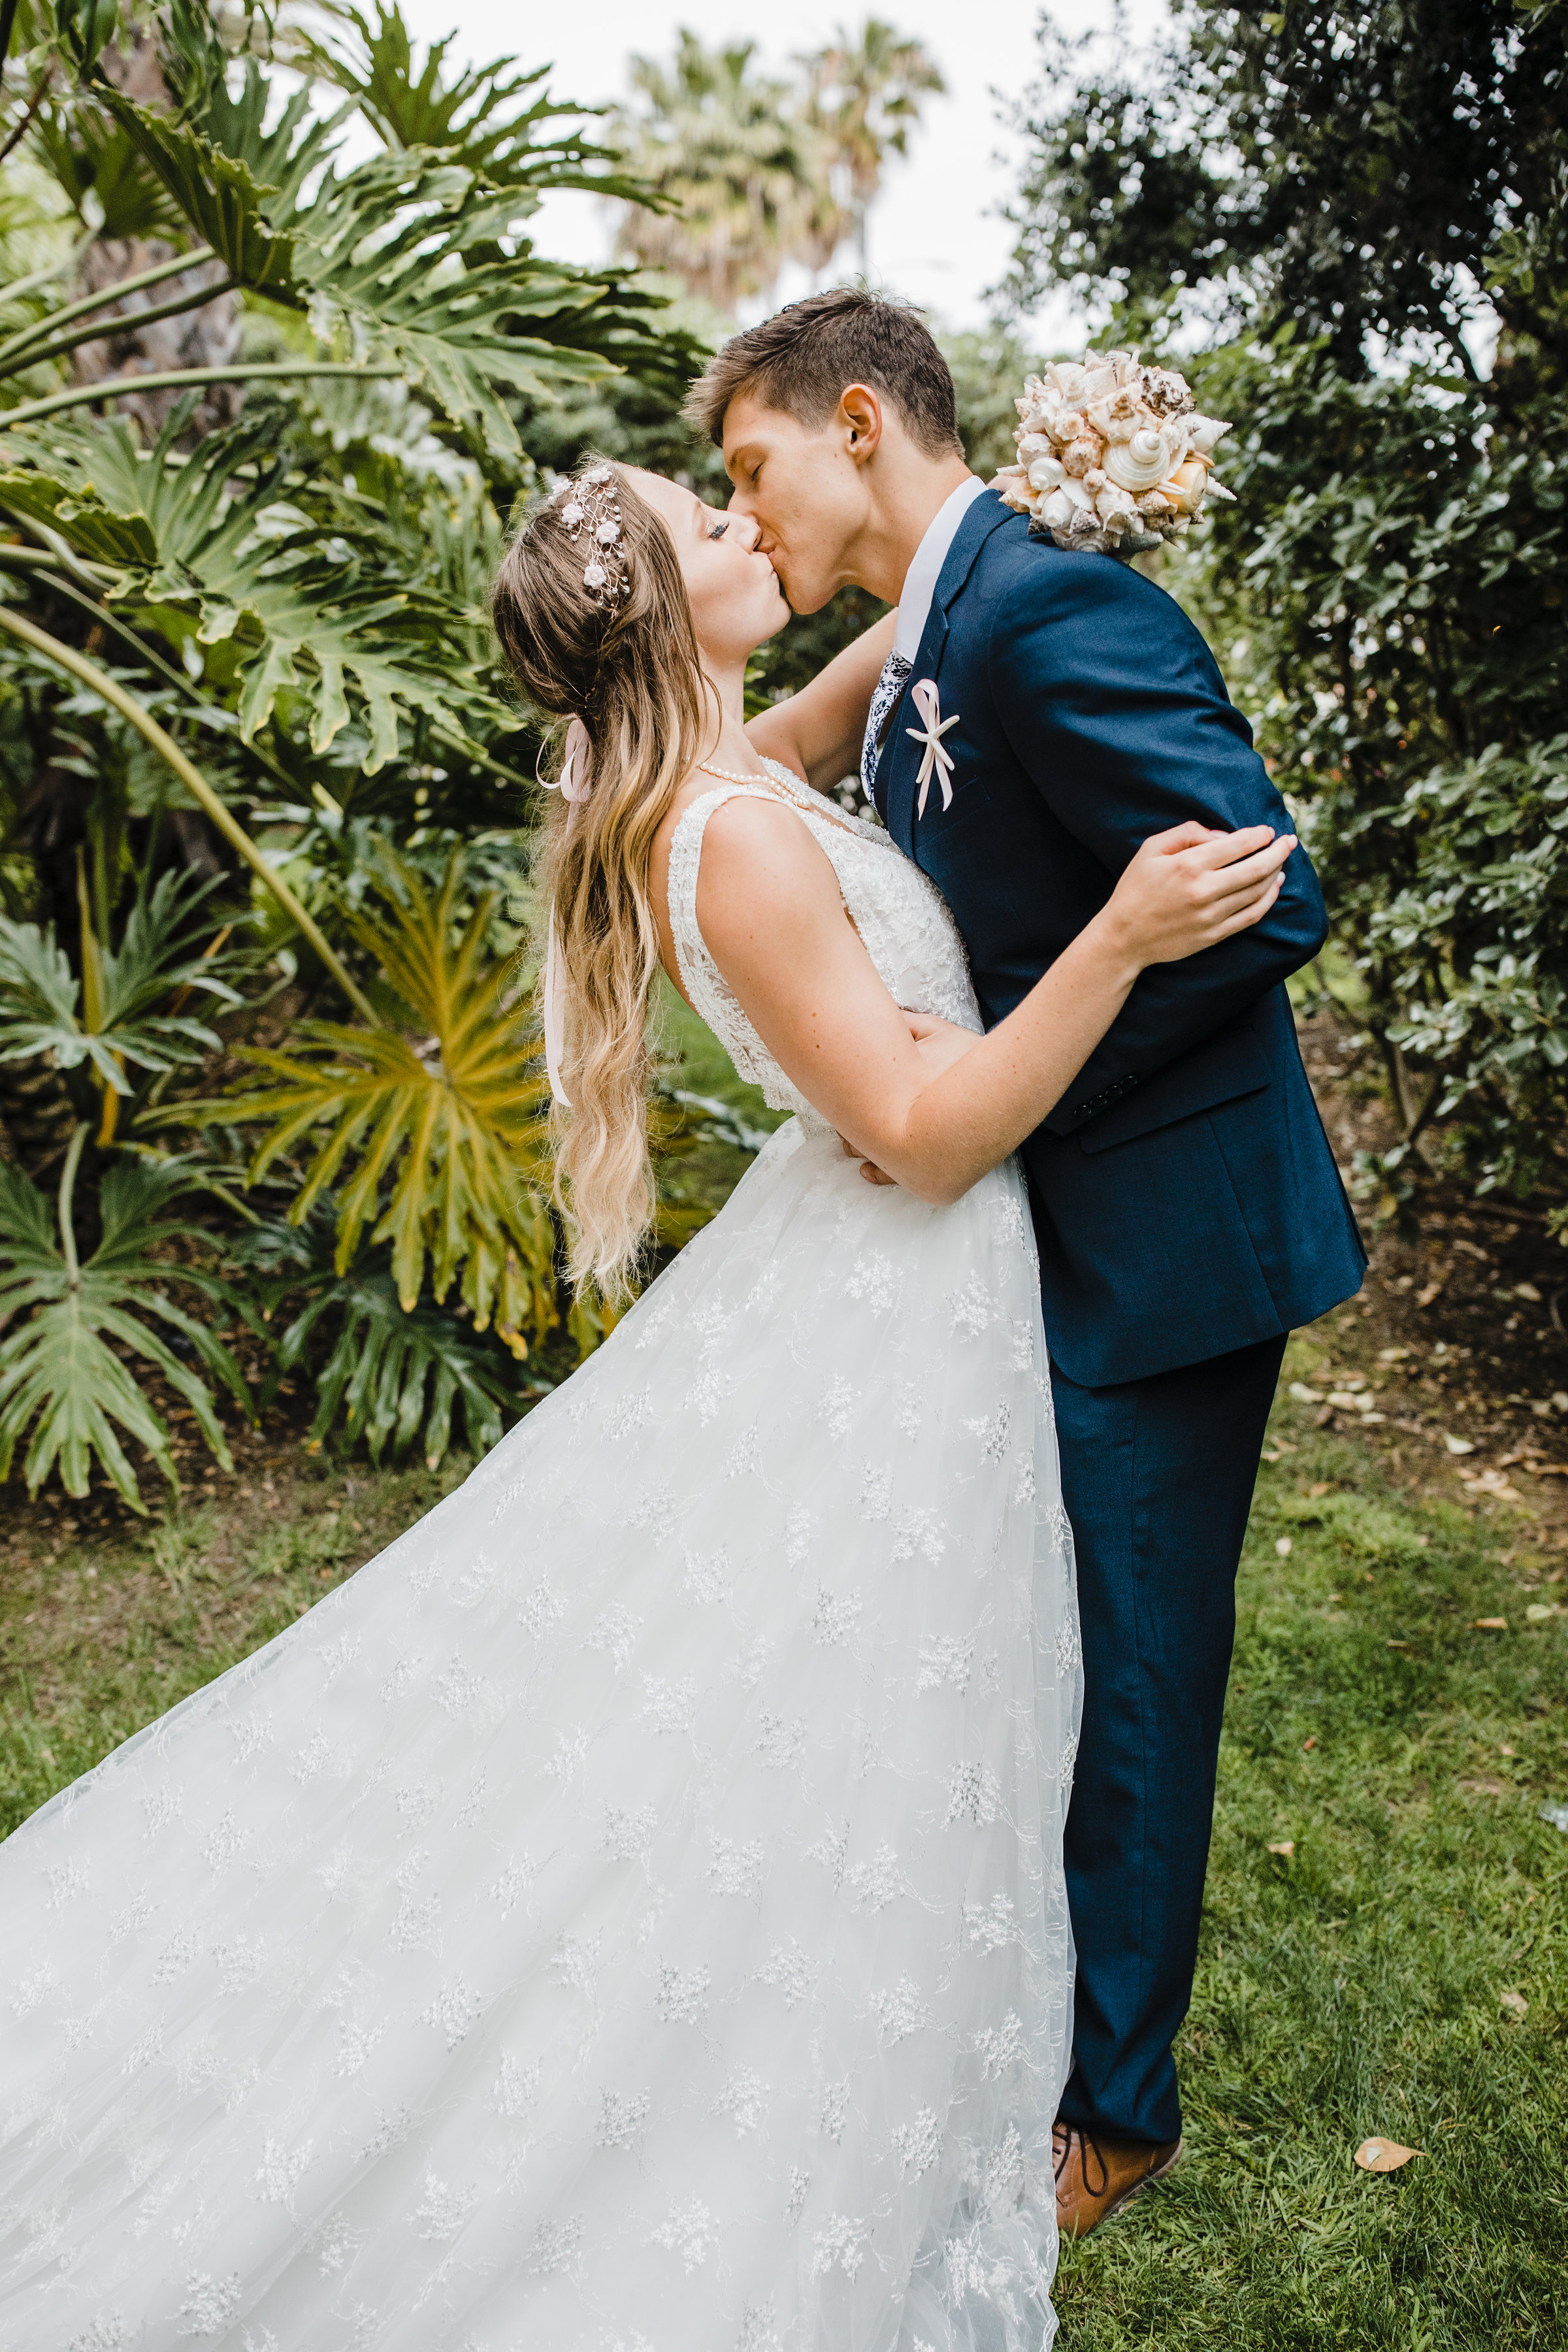 adventurous wedding photographer in boulder colorado capturing organic moments all throughout the wedding day calli richards